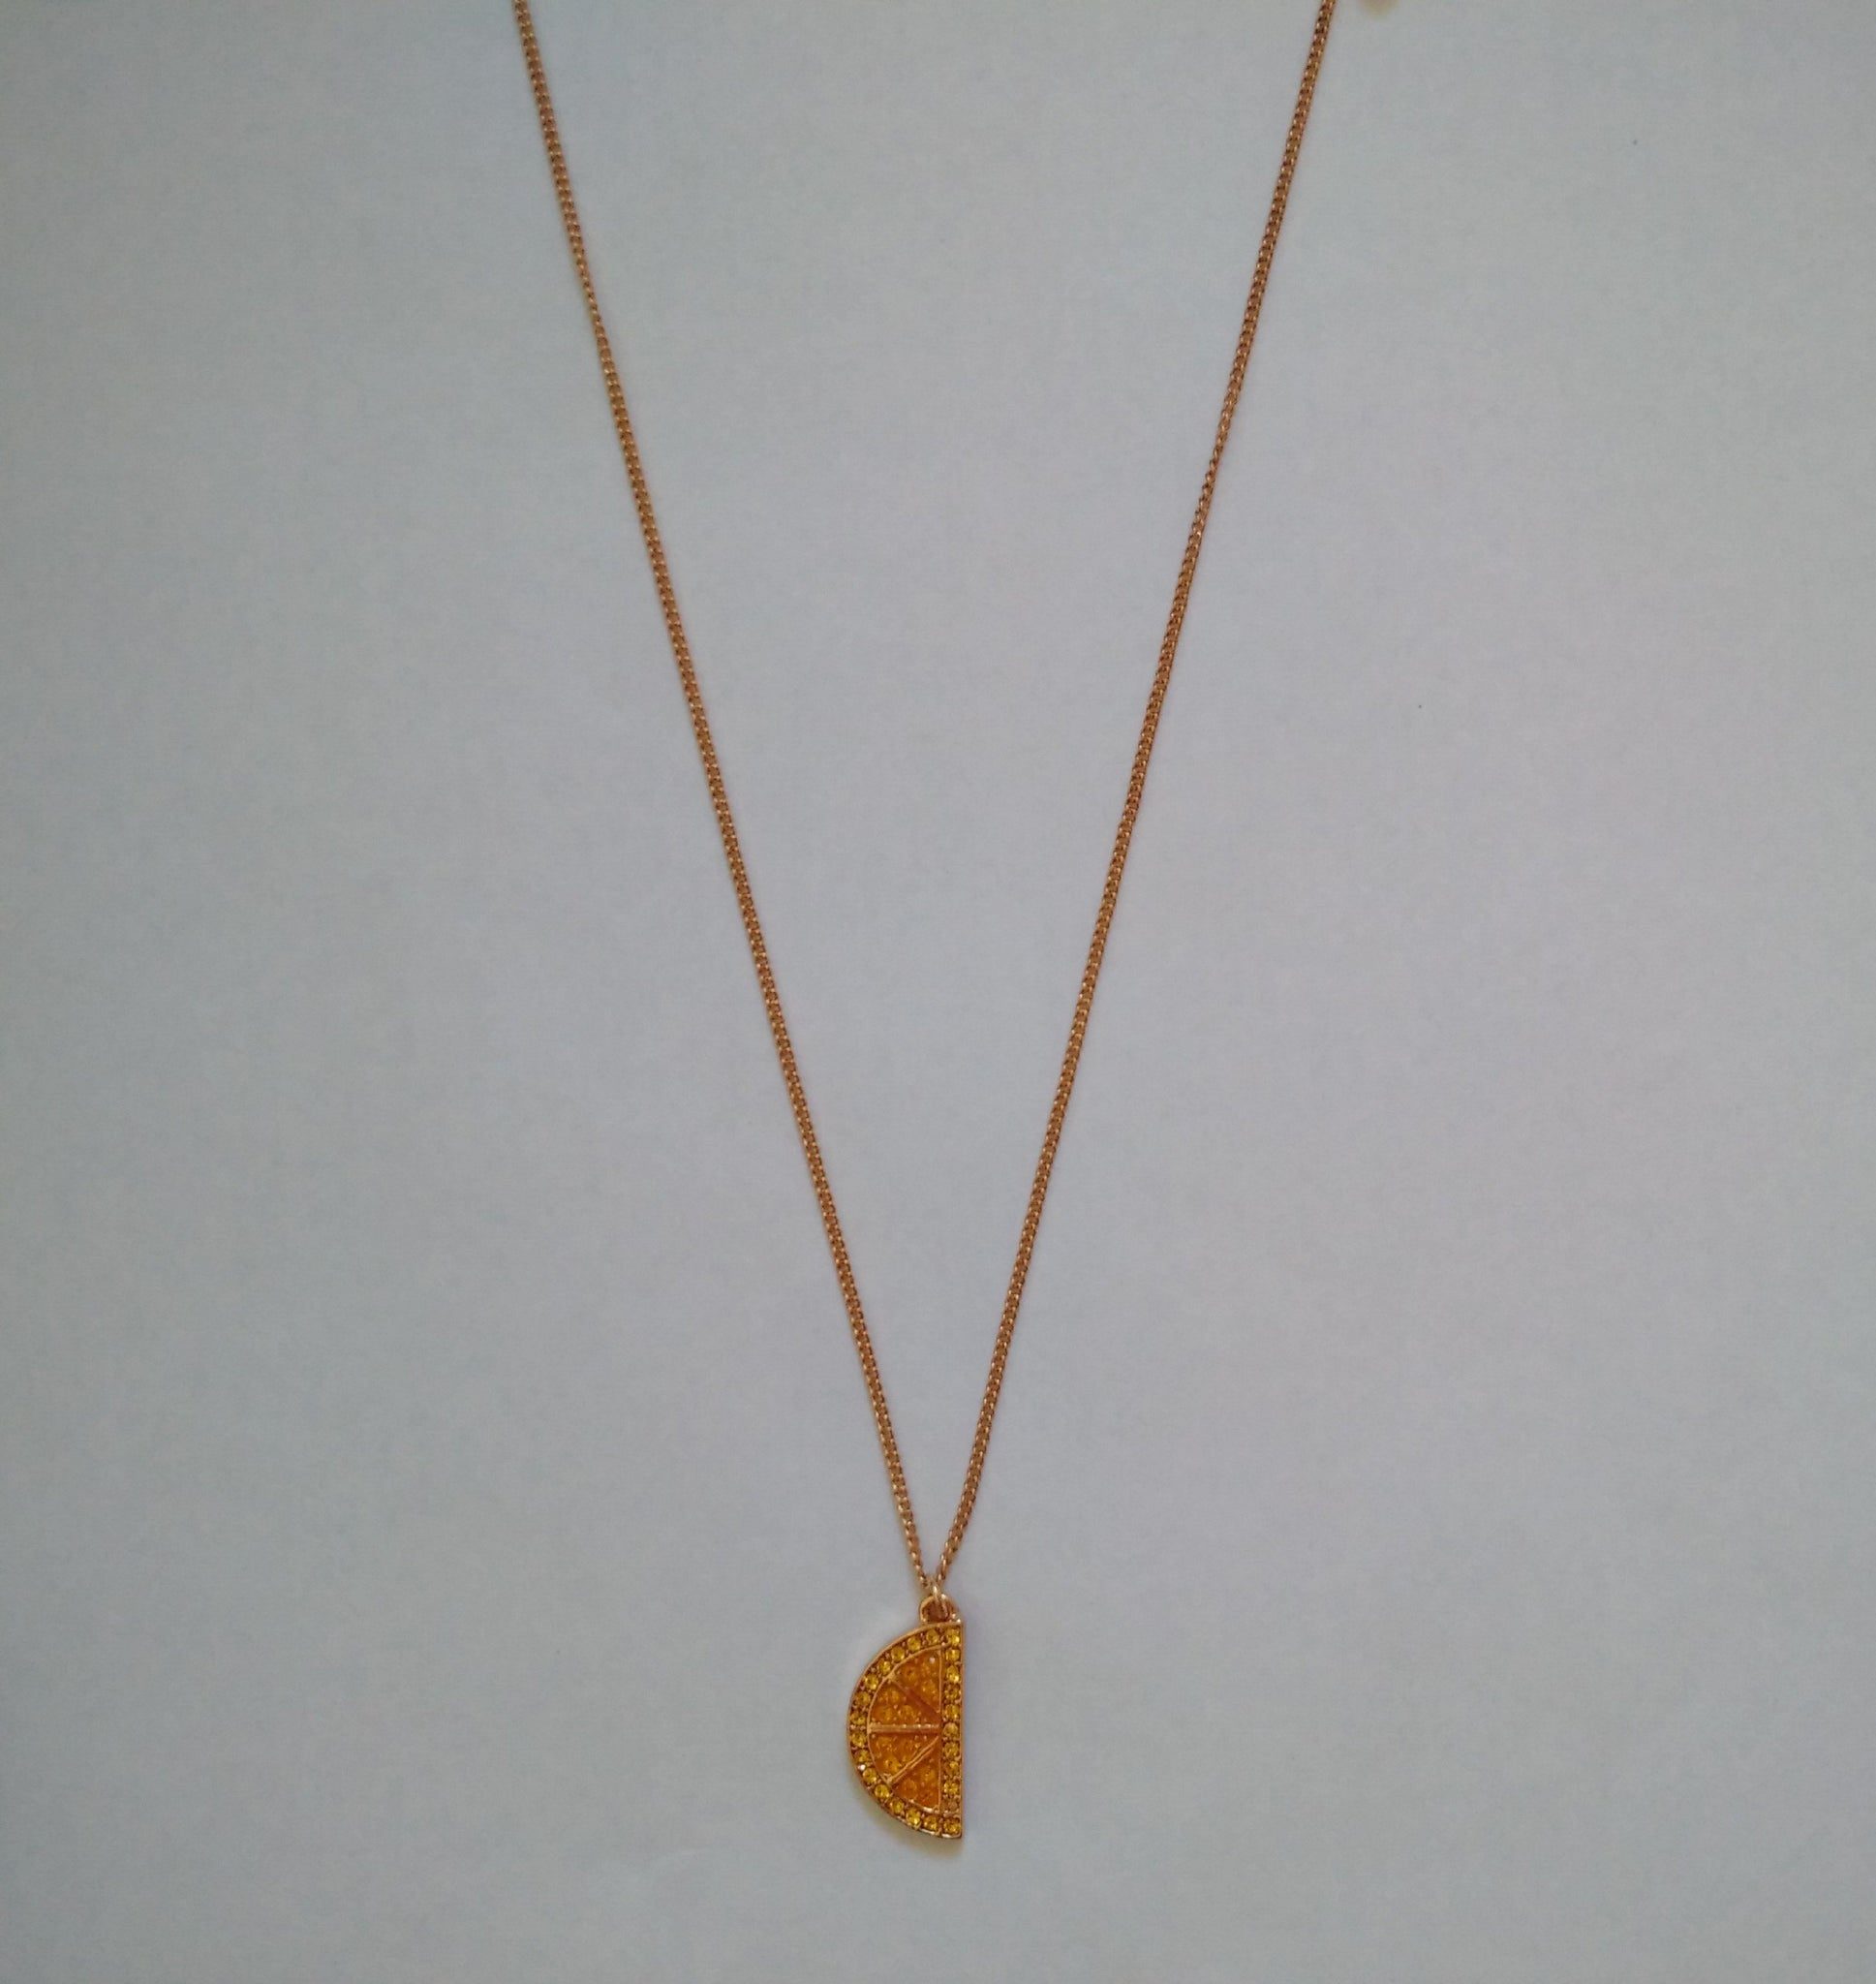 Primark Half Sun Necklace - Stockpoint Apparel Outlet